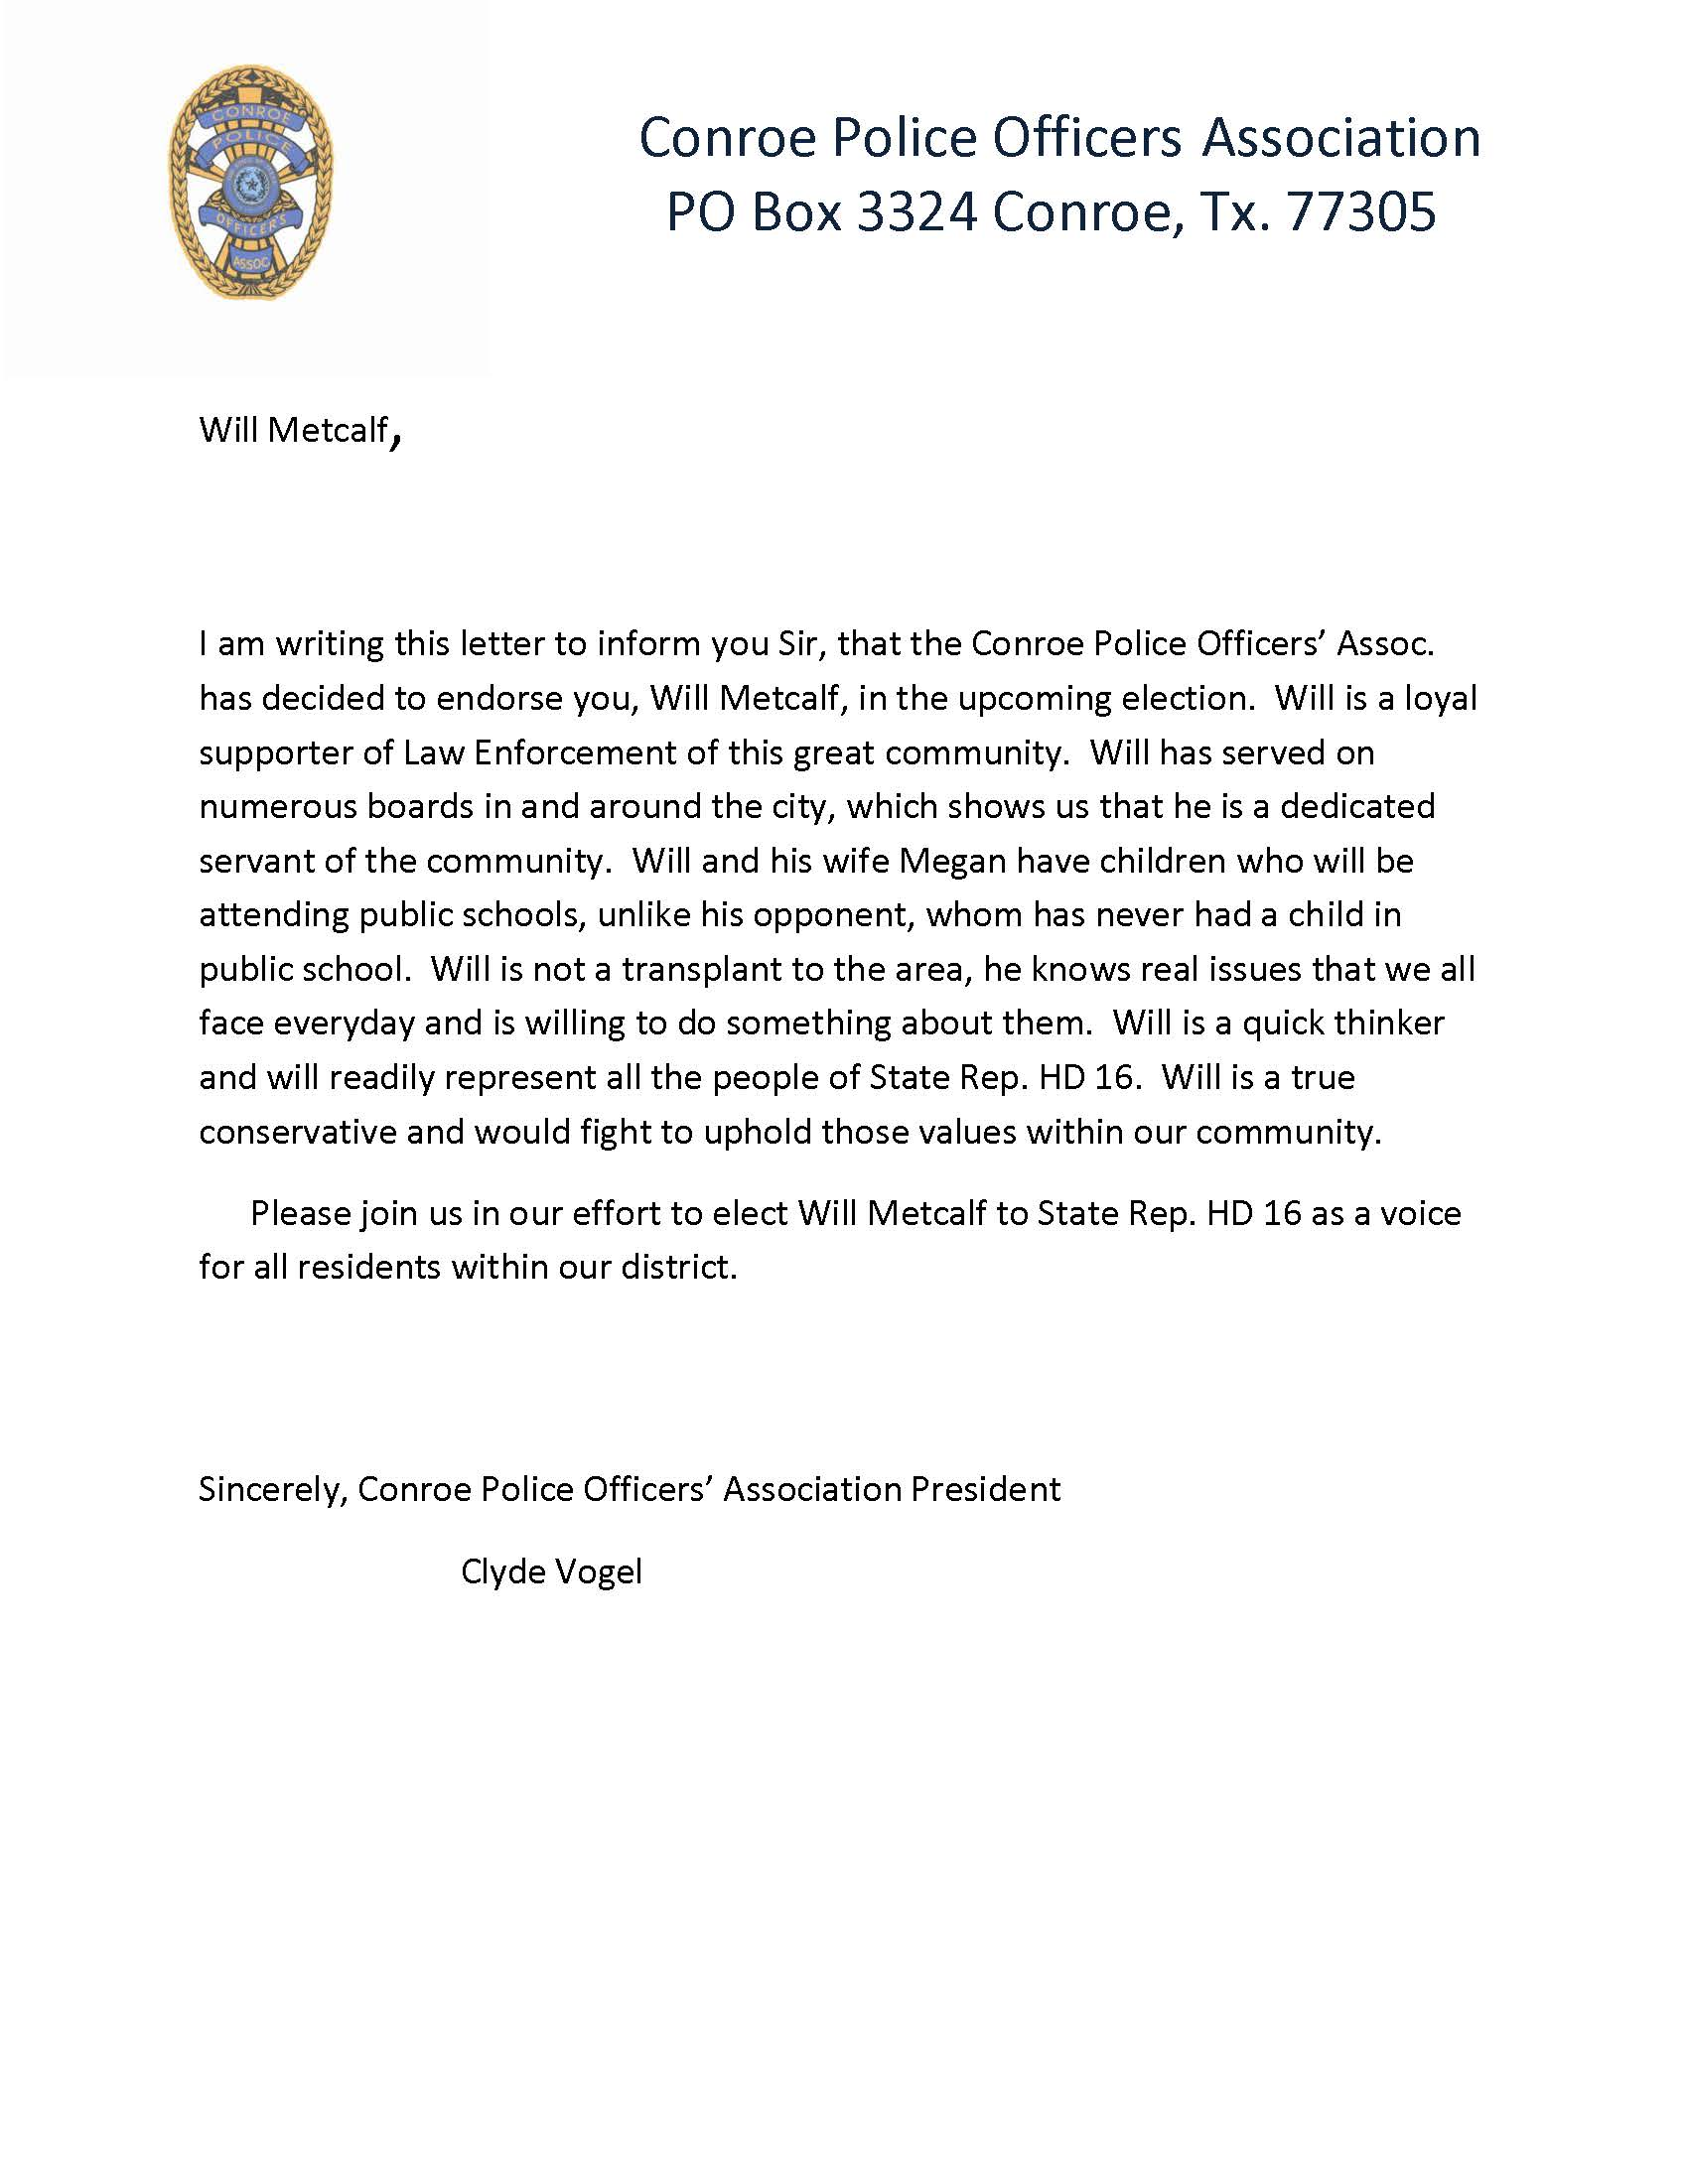 Conroe_Police_Officers_Association_Endorses_Metcalf.jpg